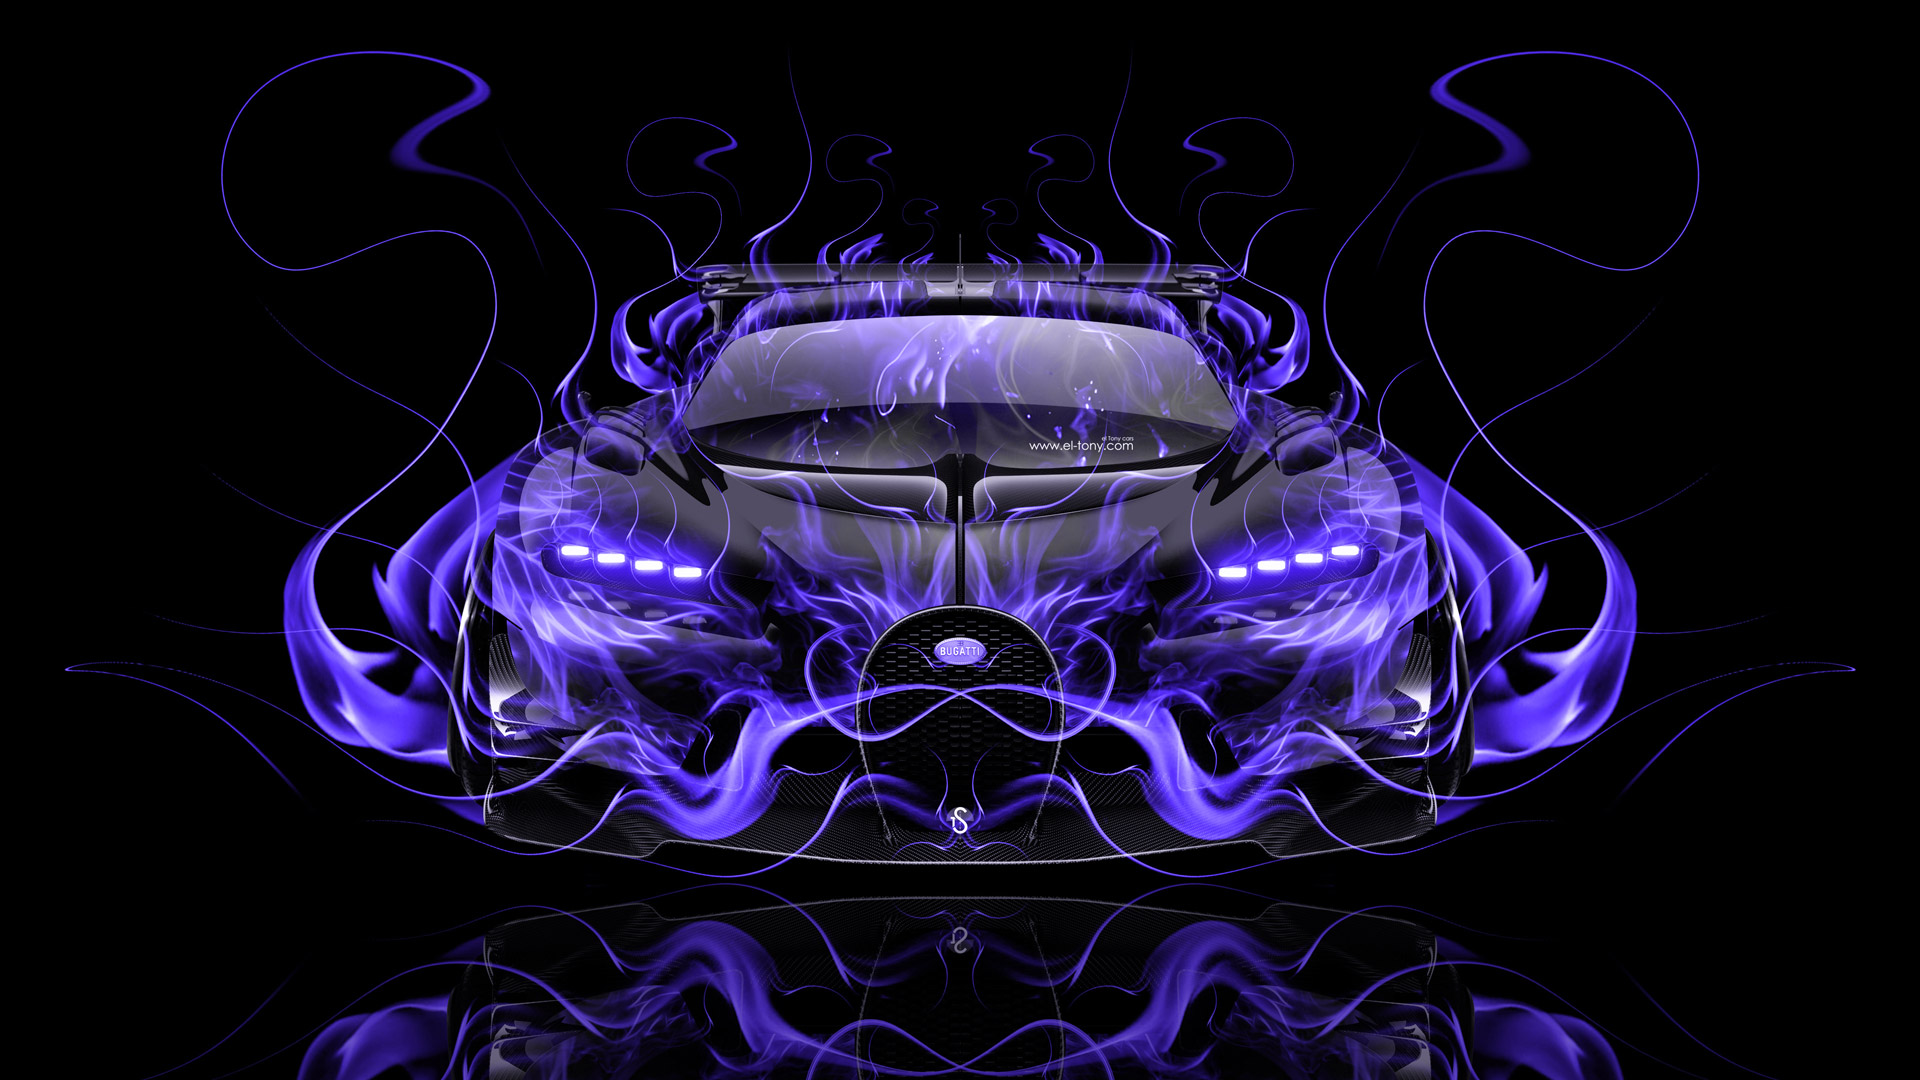 Bugatti-Vision-Gran-Turismo-FrontUp-Super-Fire-Flame-Abstract-Car-Violet-Black-Colors-HD-Wallpa-wallpaper-wp3603741